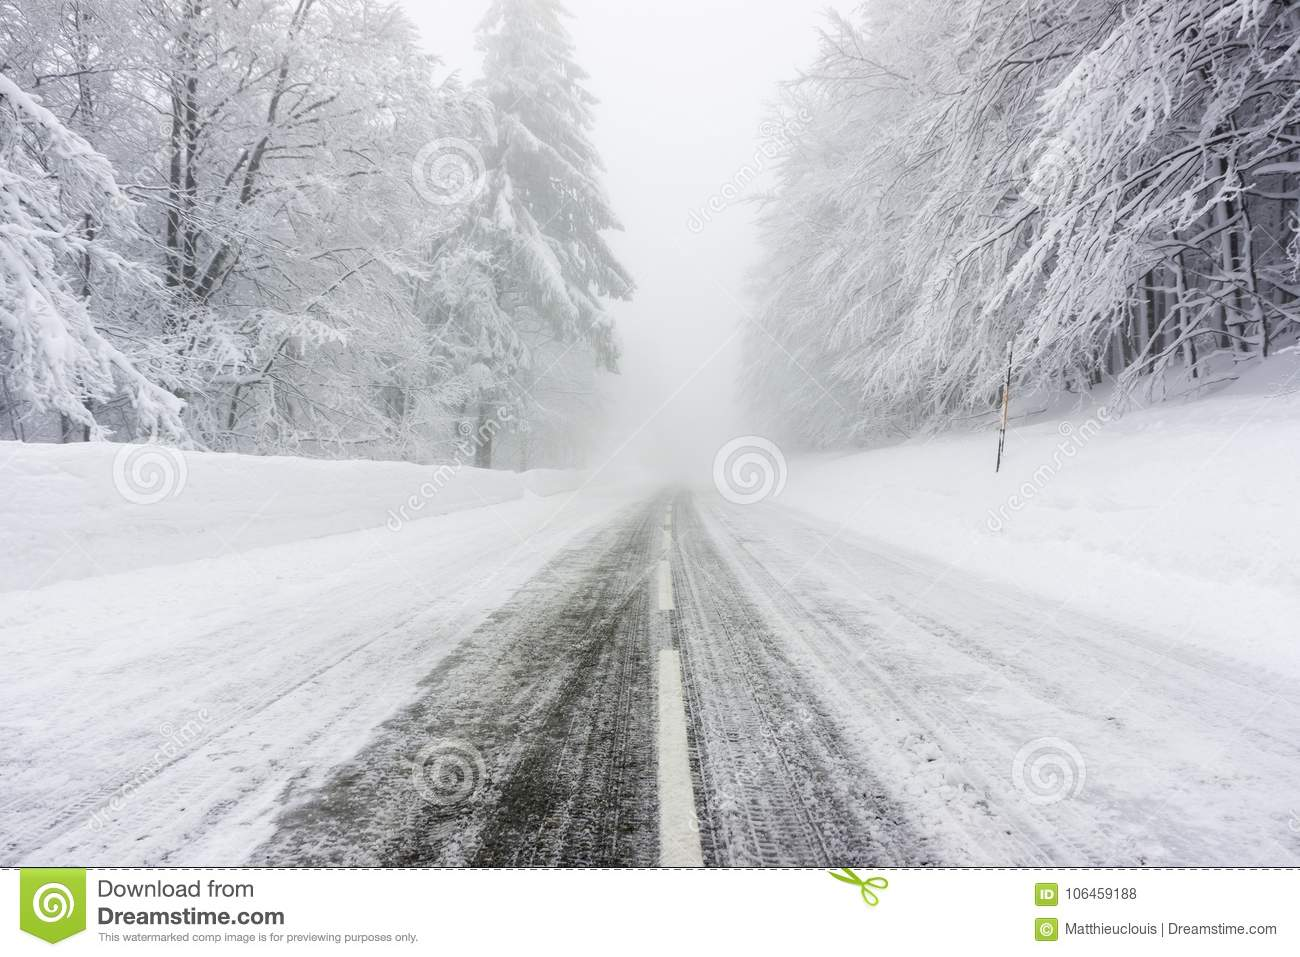 Snowy and icy road in foggy weather